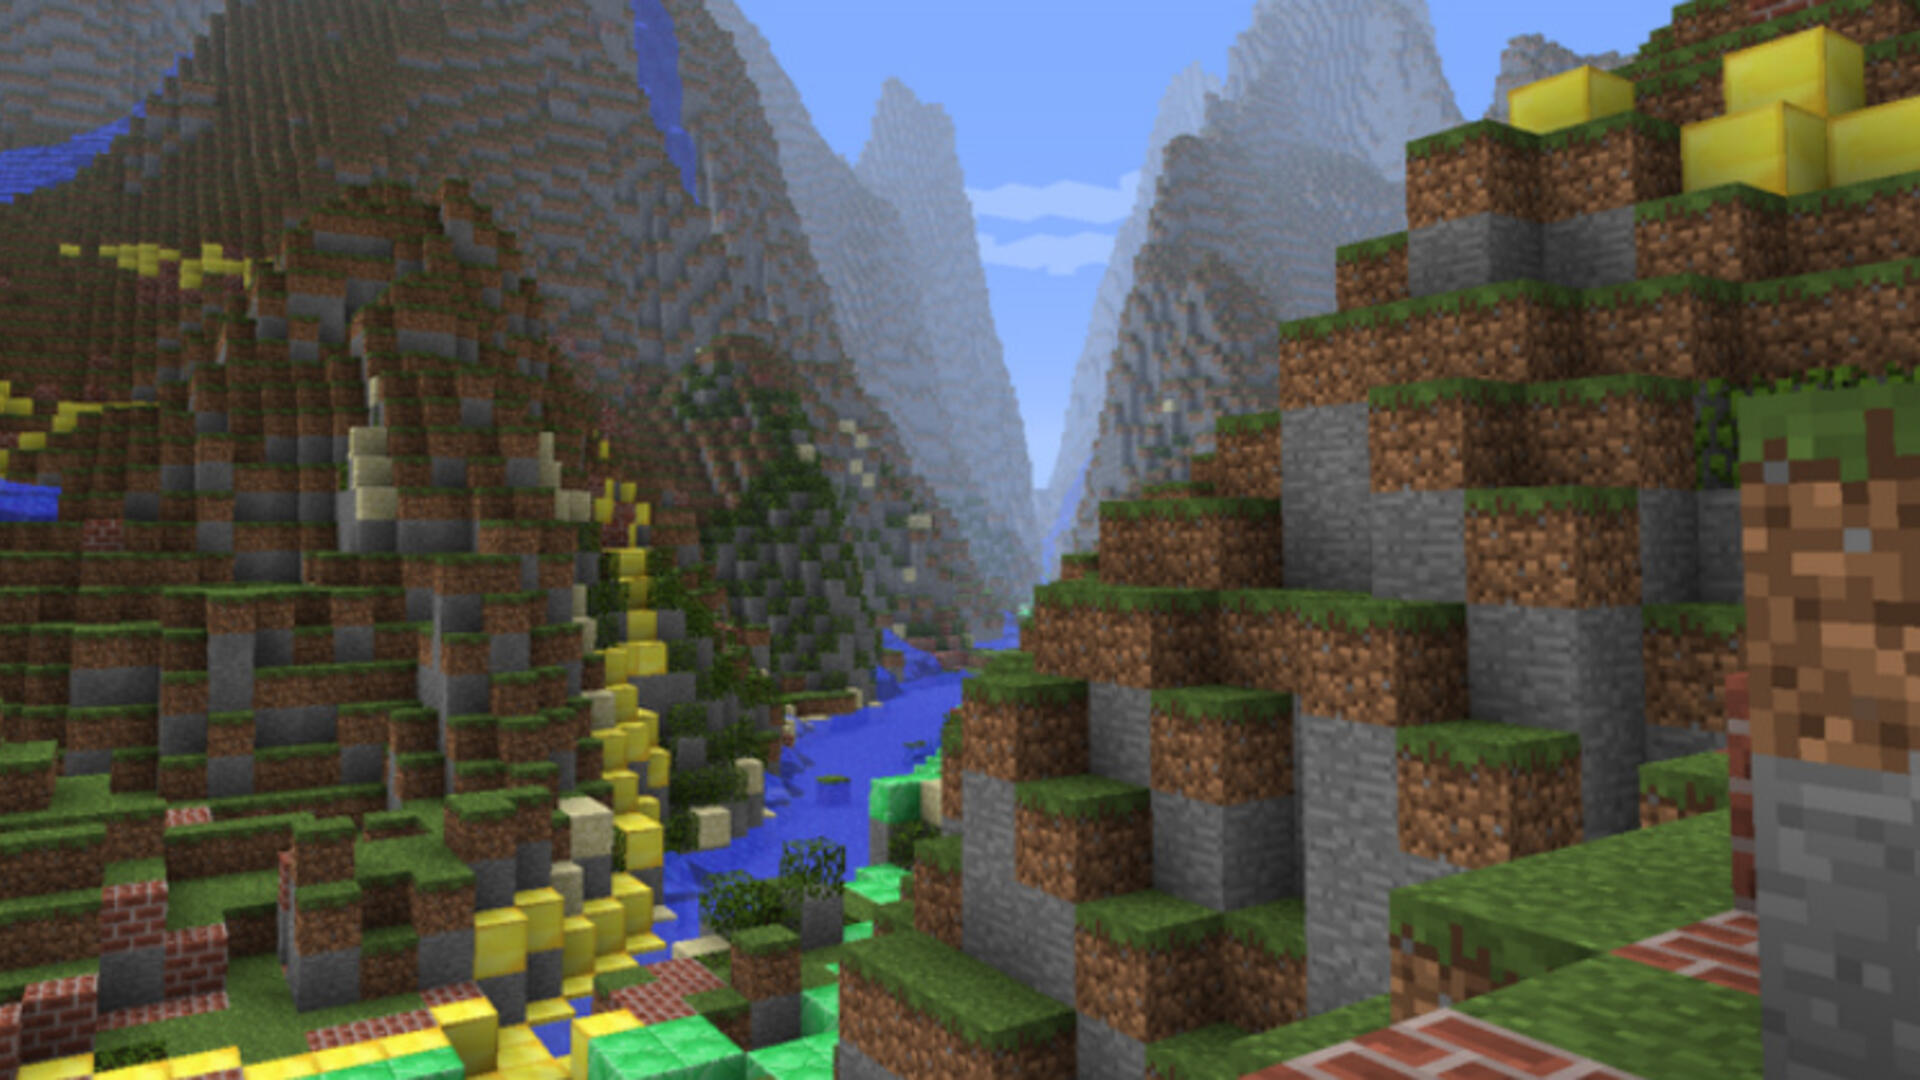 Minecraft Launching New Marketplace for Community Developers